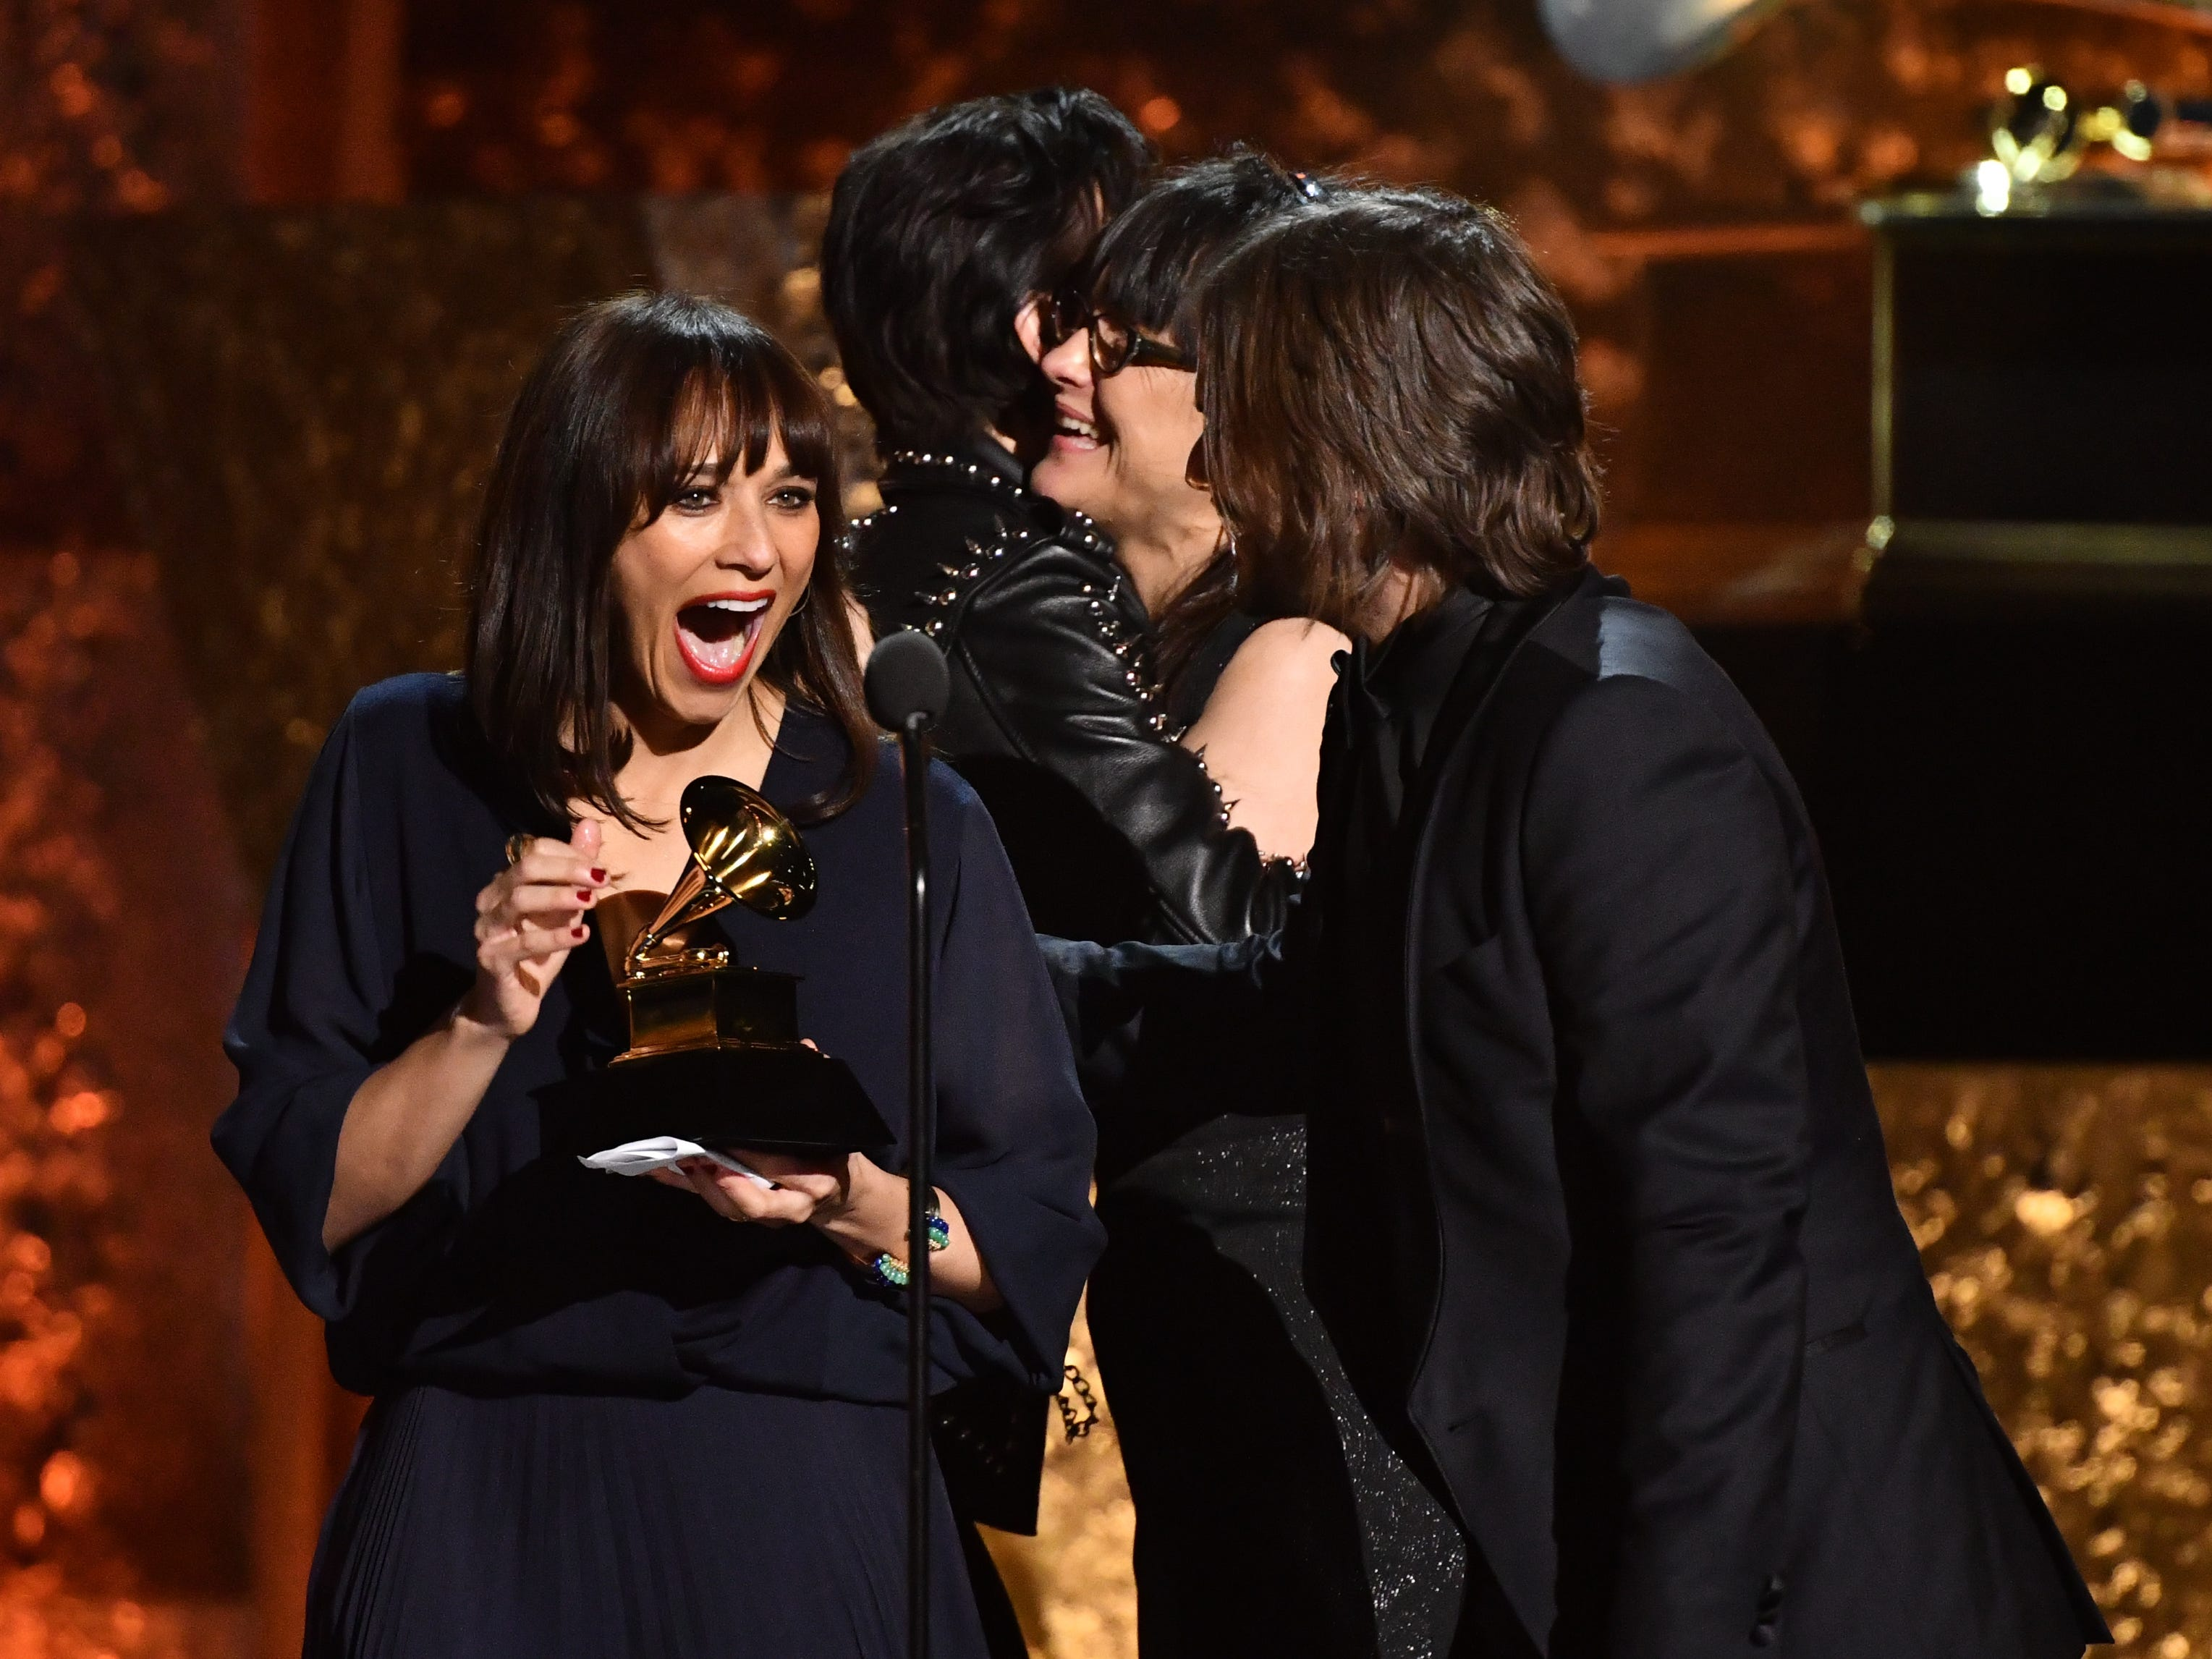 Rashida Jones. left, accepts the award for Best Music Film for Quincy at the Grammy Awards Premiere Ceremony.